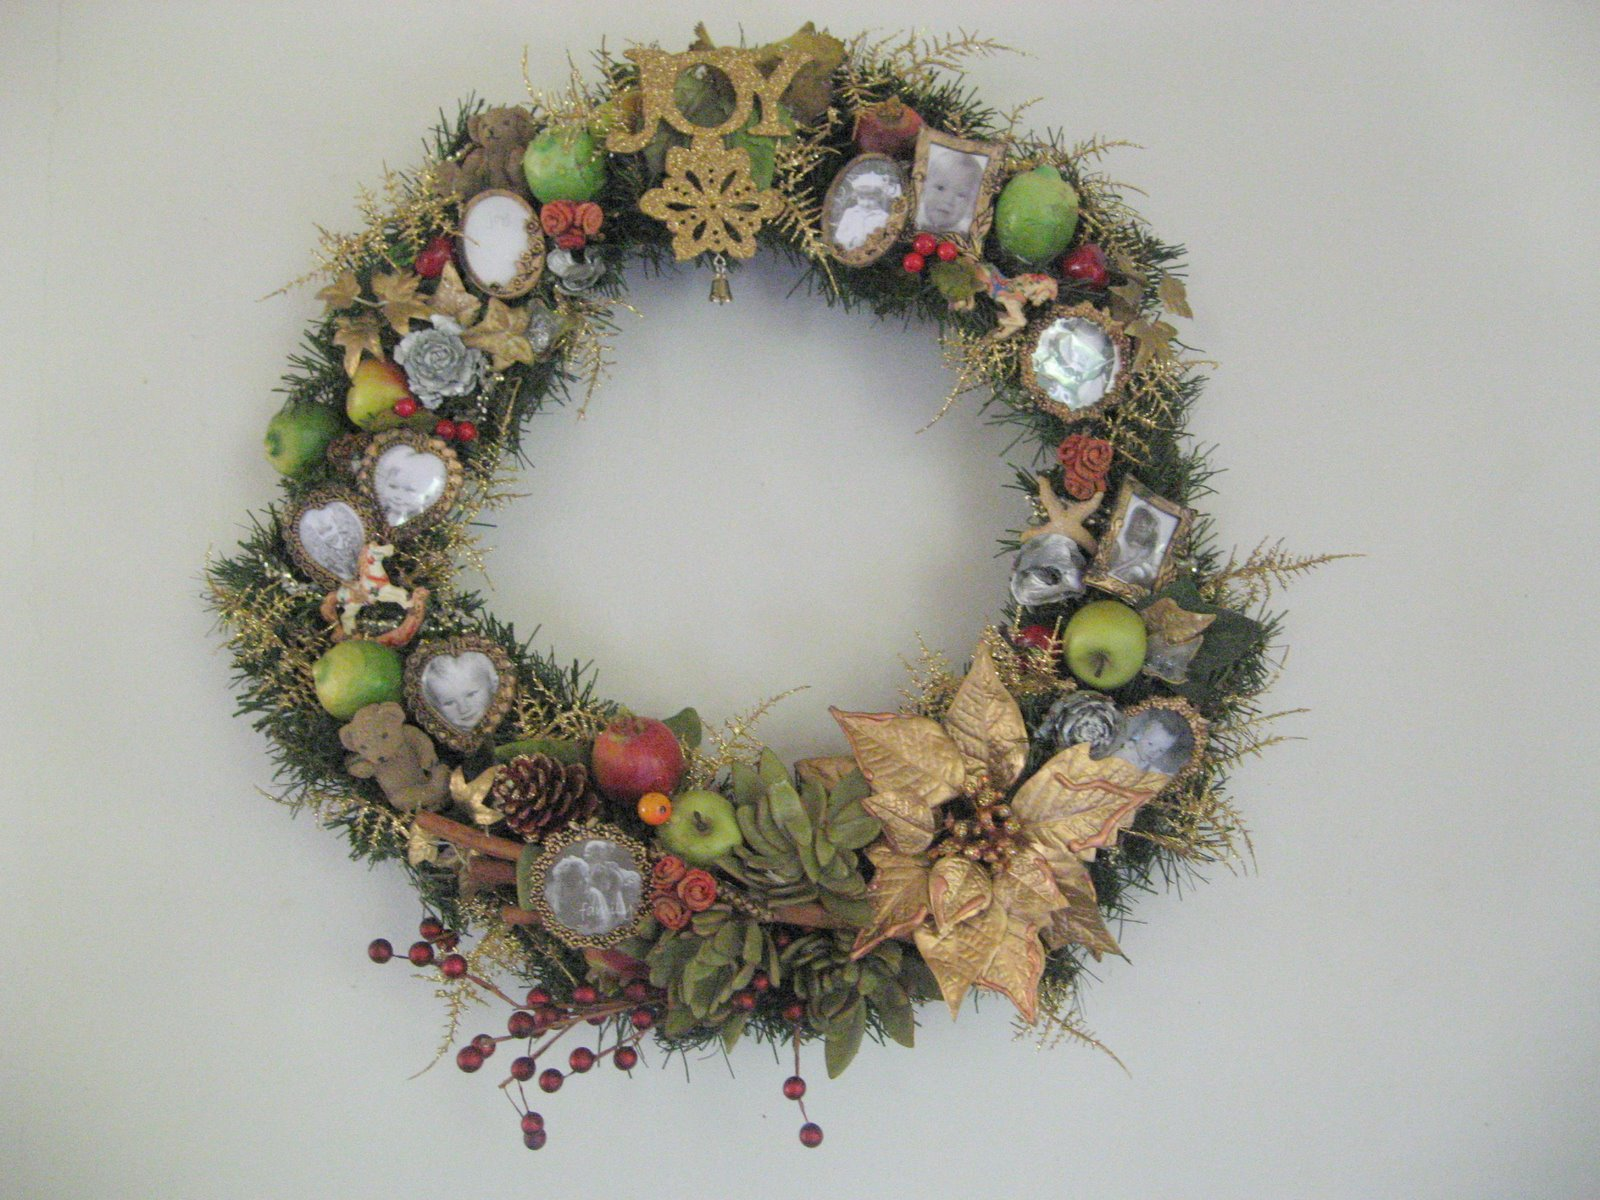 Christmas at eden creative christmas wreaths inspiration Christmas wreaths to make